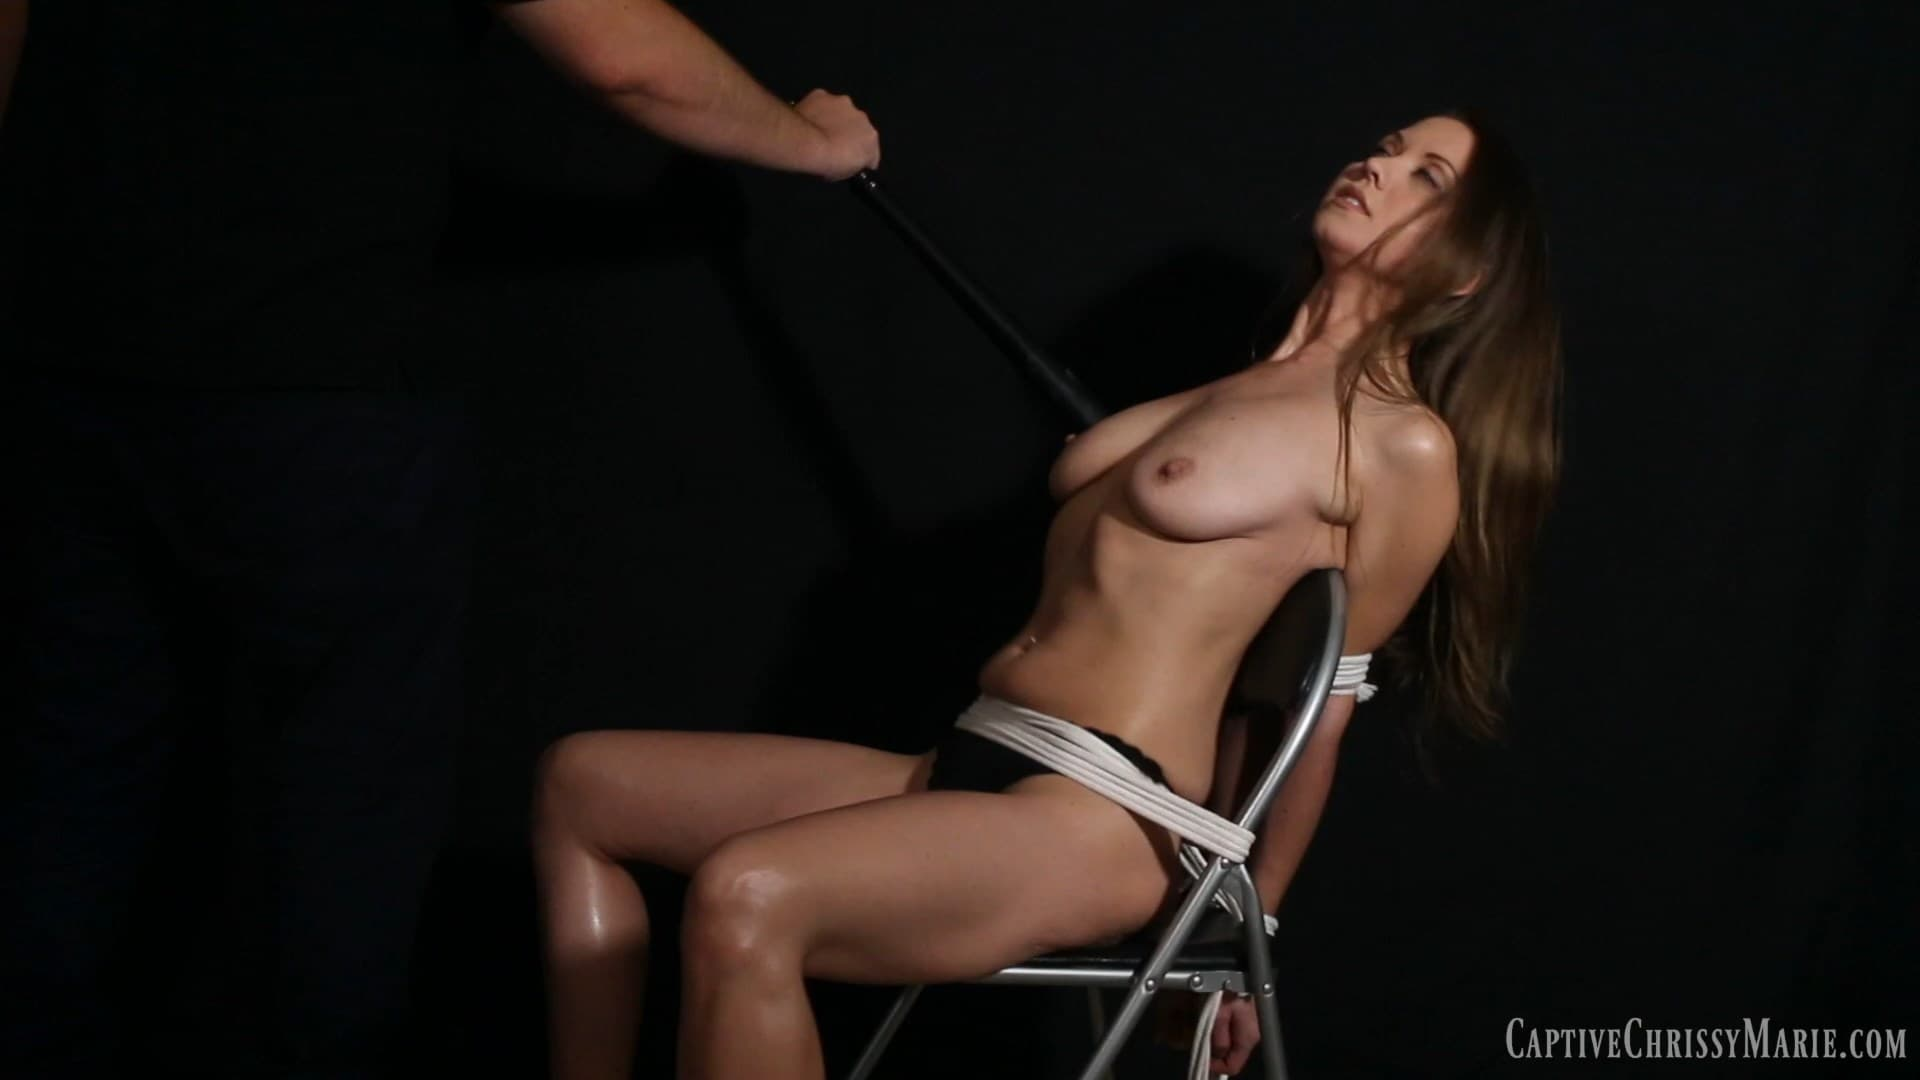 Captive Chrissy Marie – MP4/Full HD – Chrissy Marie – Stripped, Stretched and Interrogated 2